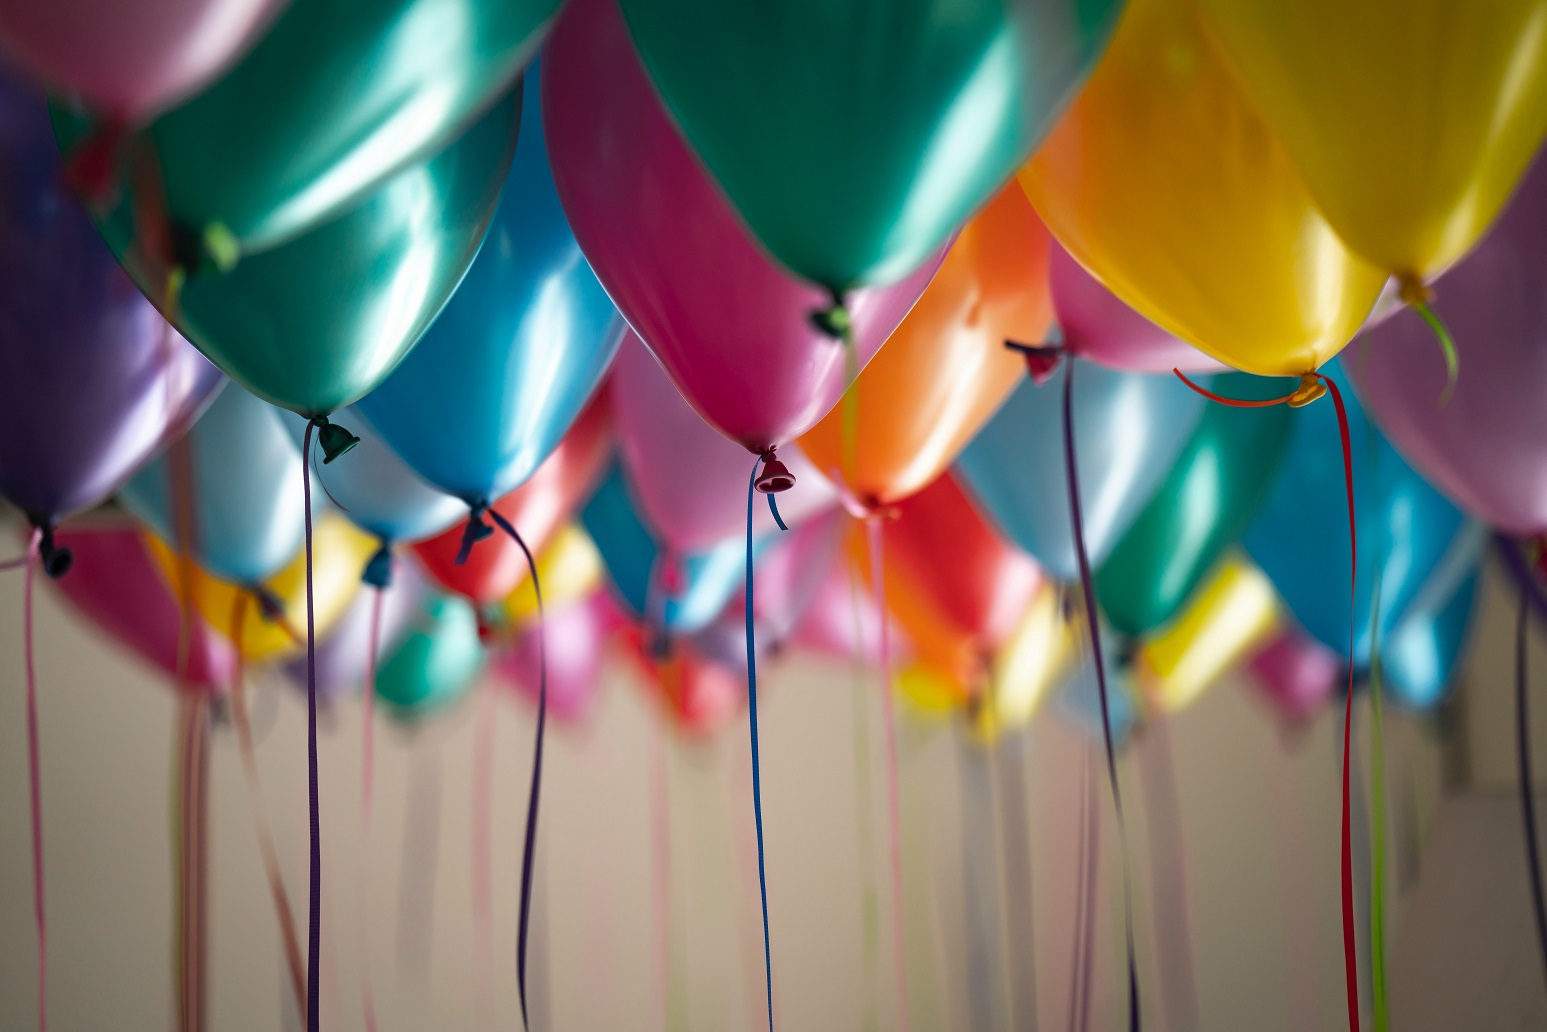 Max Keiser, balloons for a party